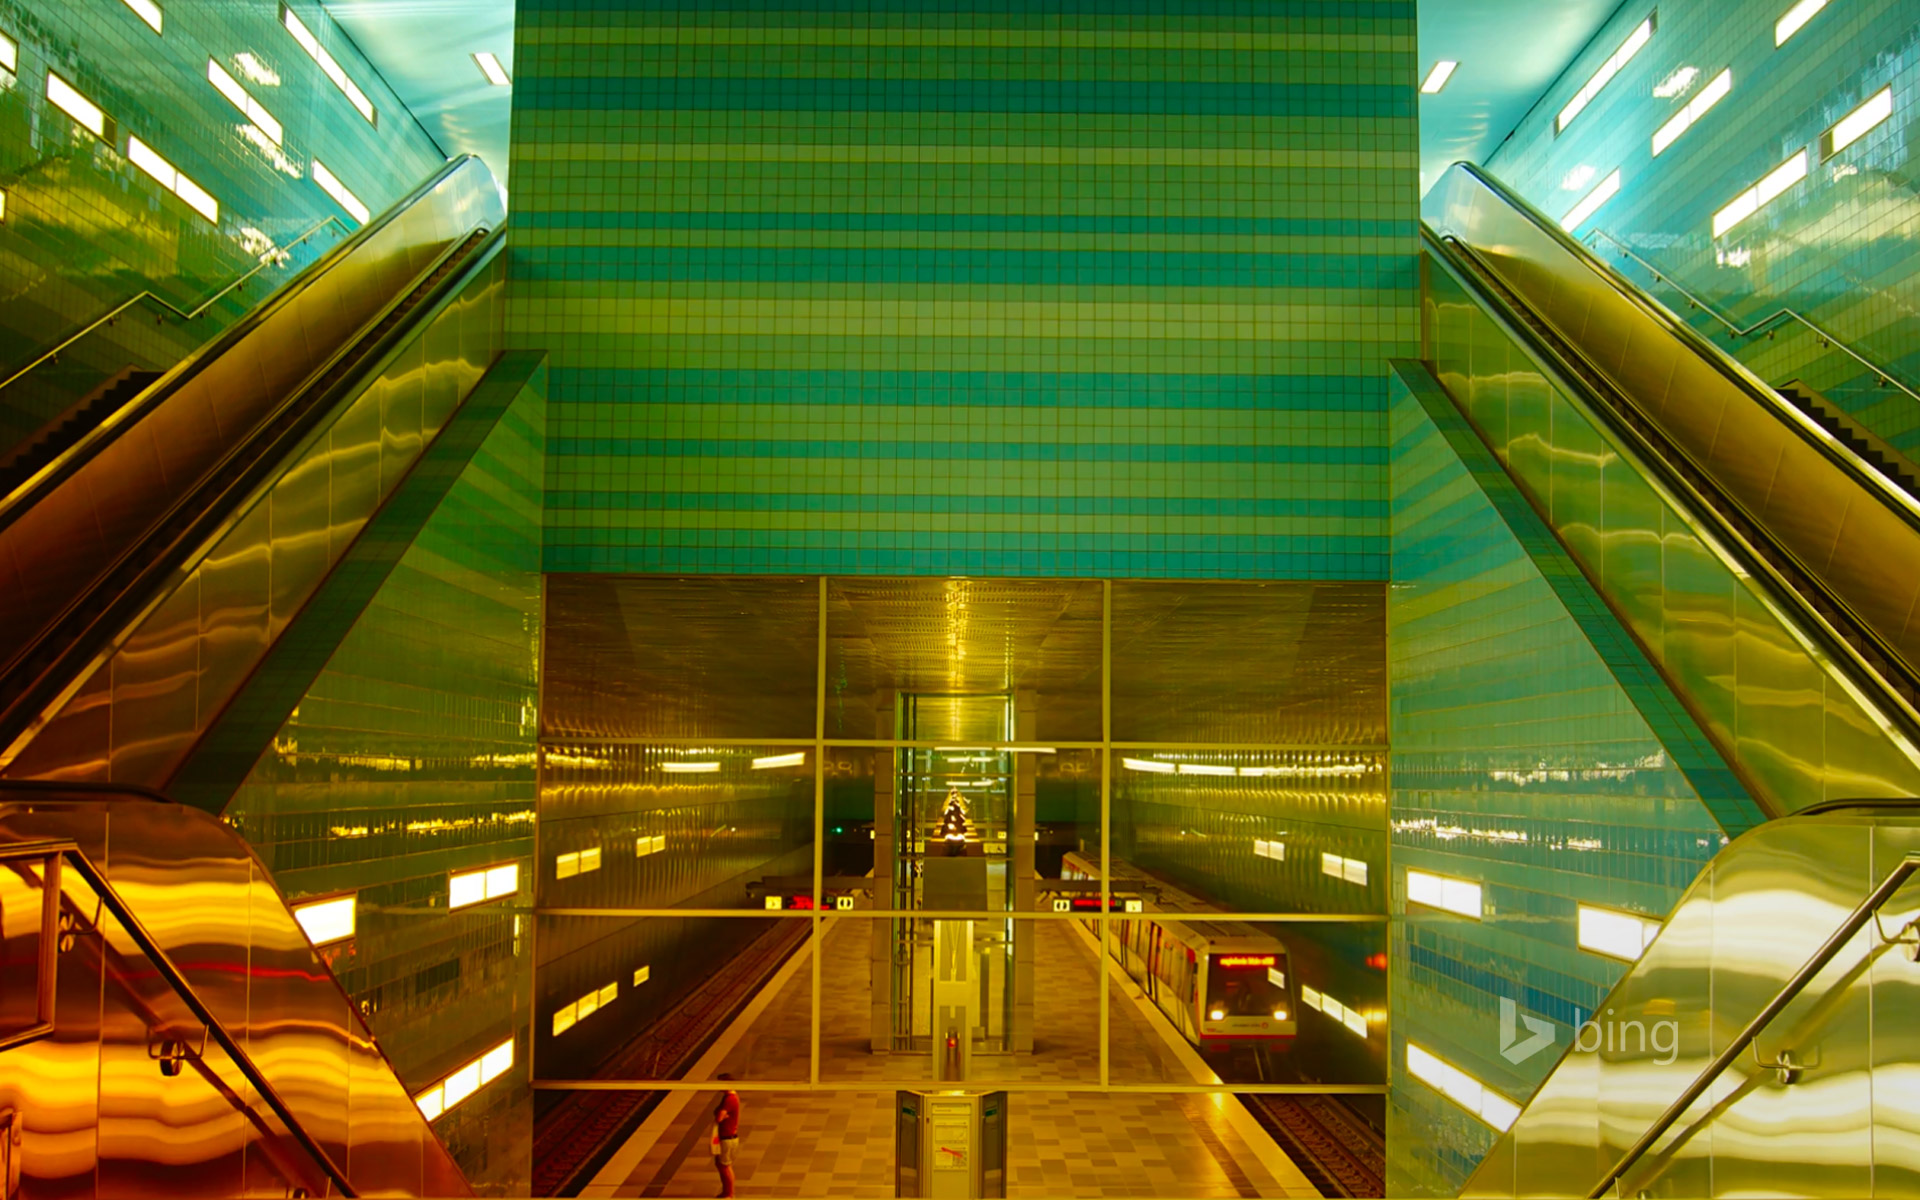 Überseequartier U-Bahn station in HafenCity, Hamburg, Germany